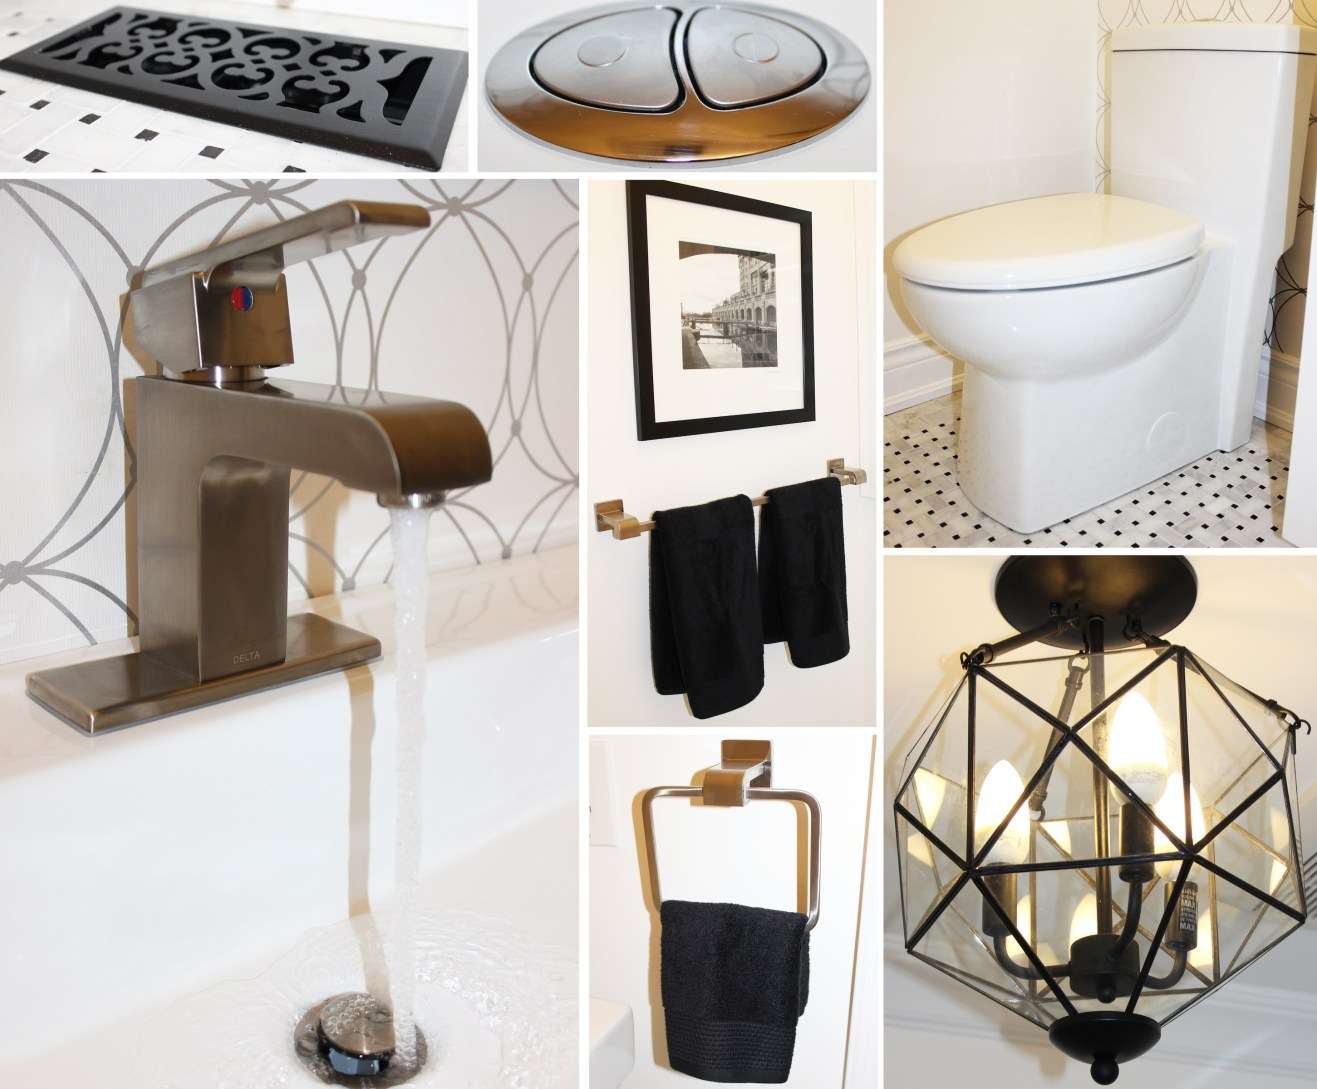 Powder room facelift details